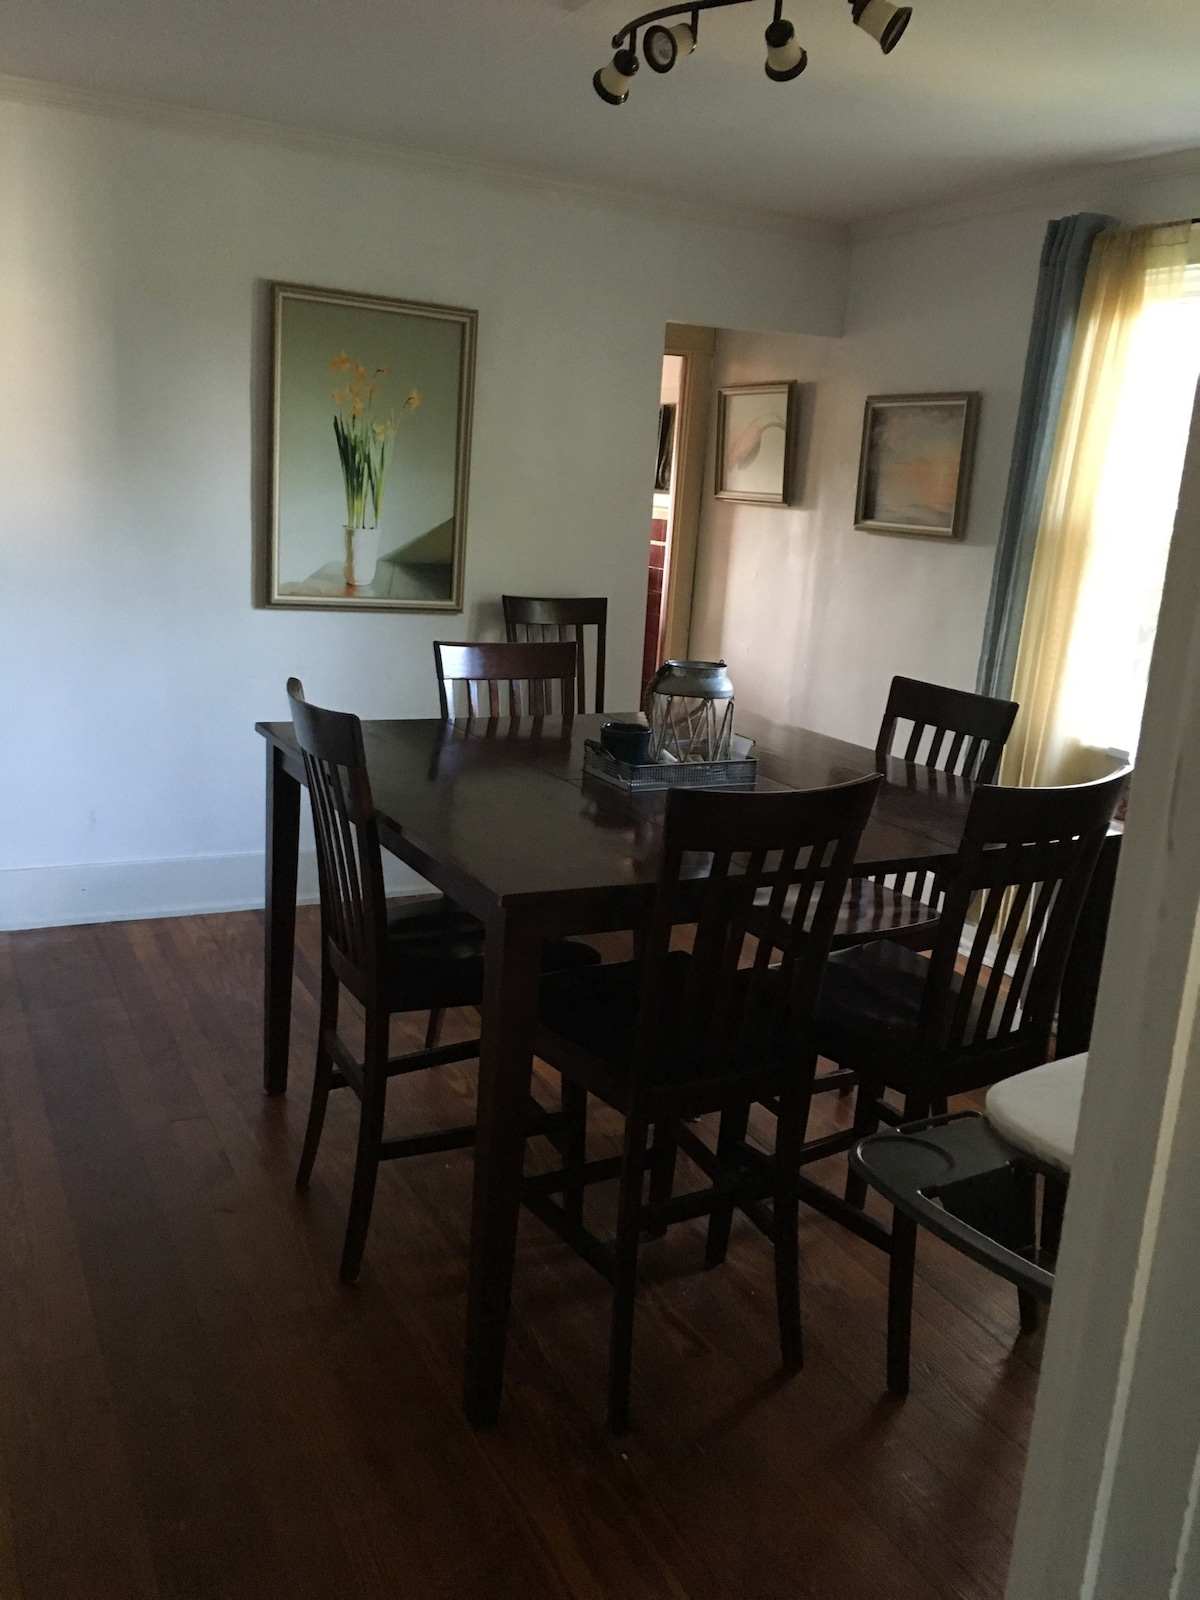 Small Bed, Small Bedroom 9x9.   Apartments For Rent In Allentown,  Pennsylvania, United States